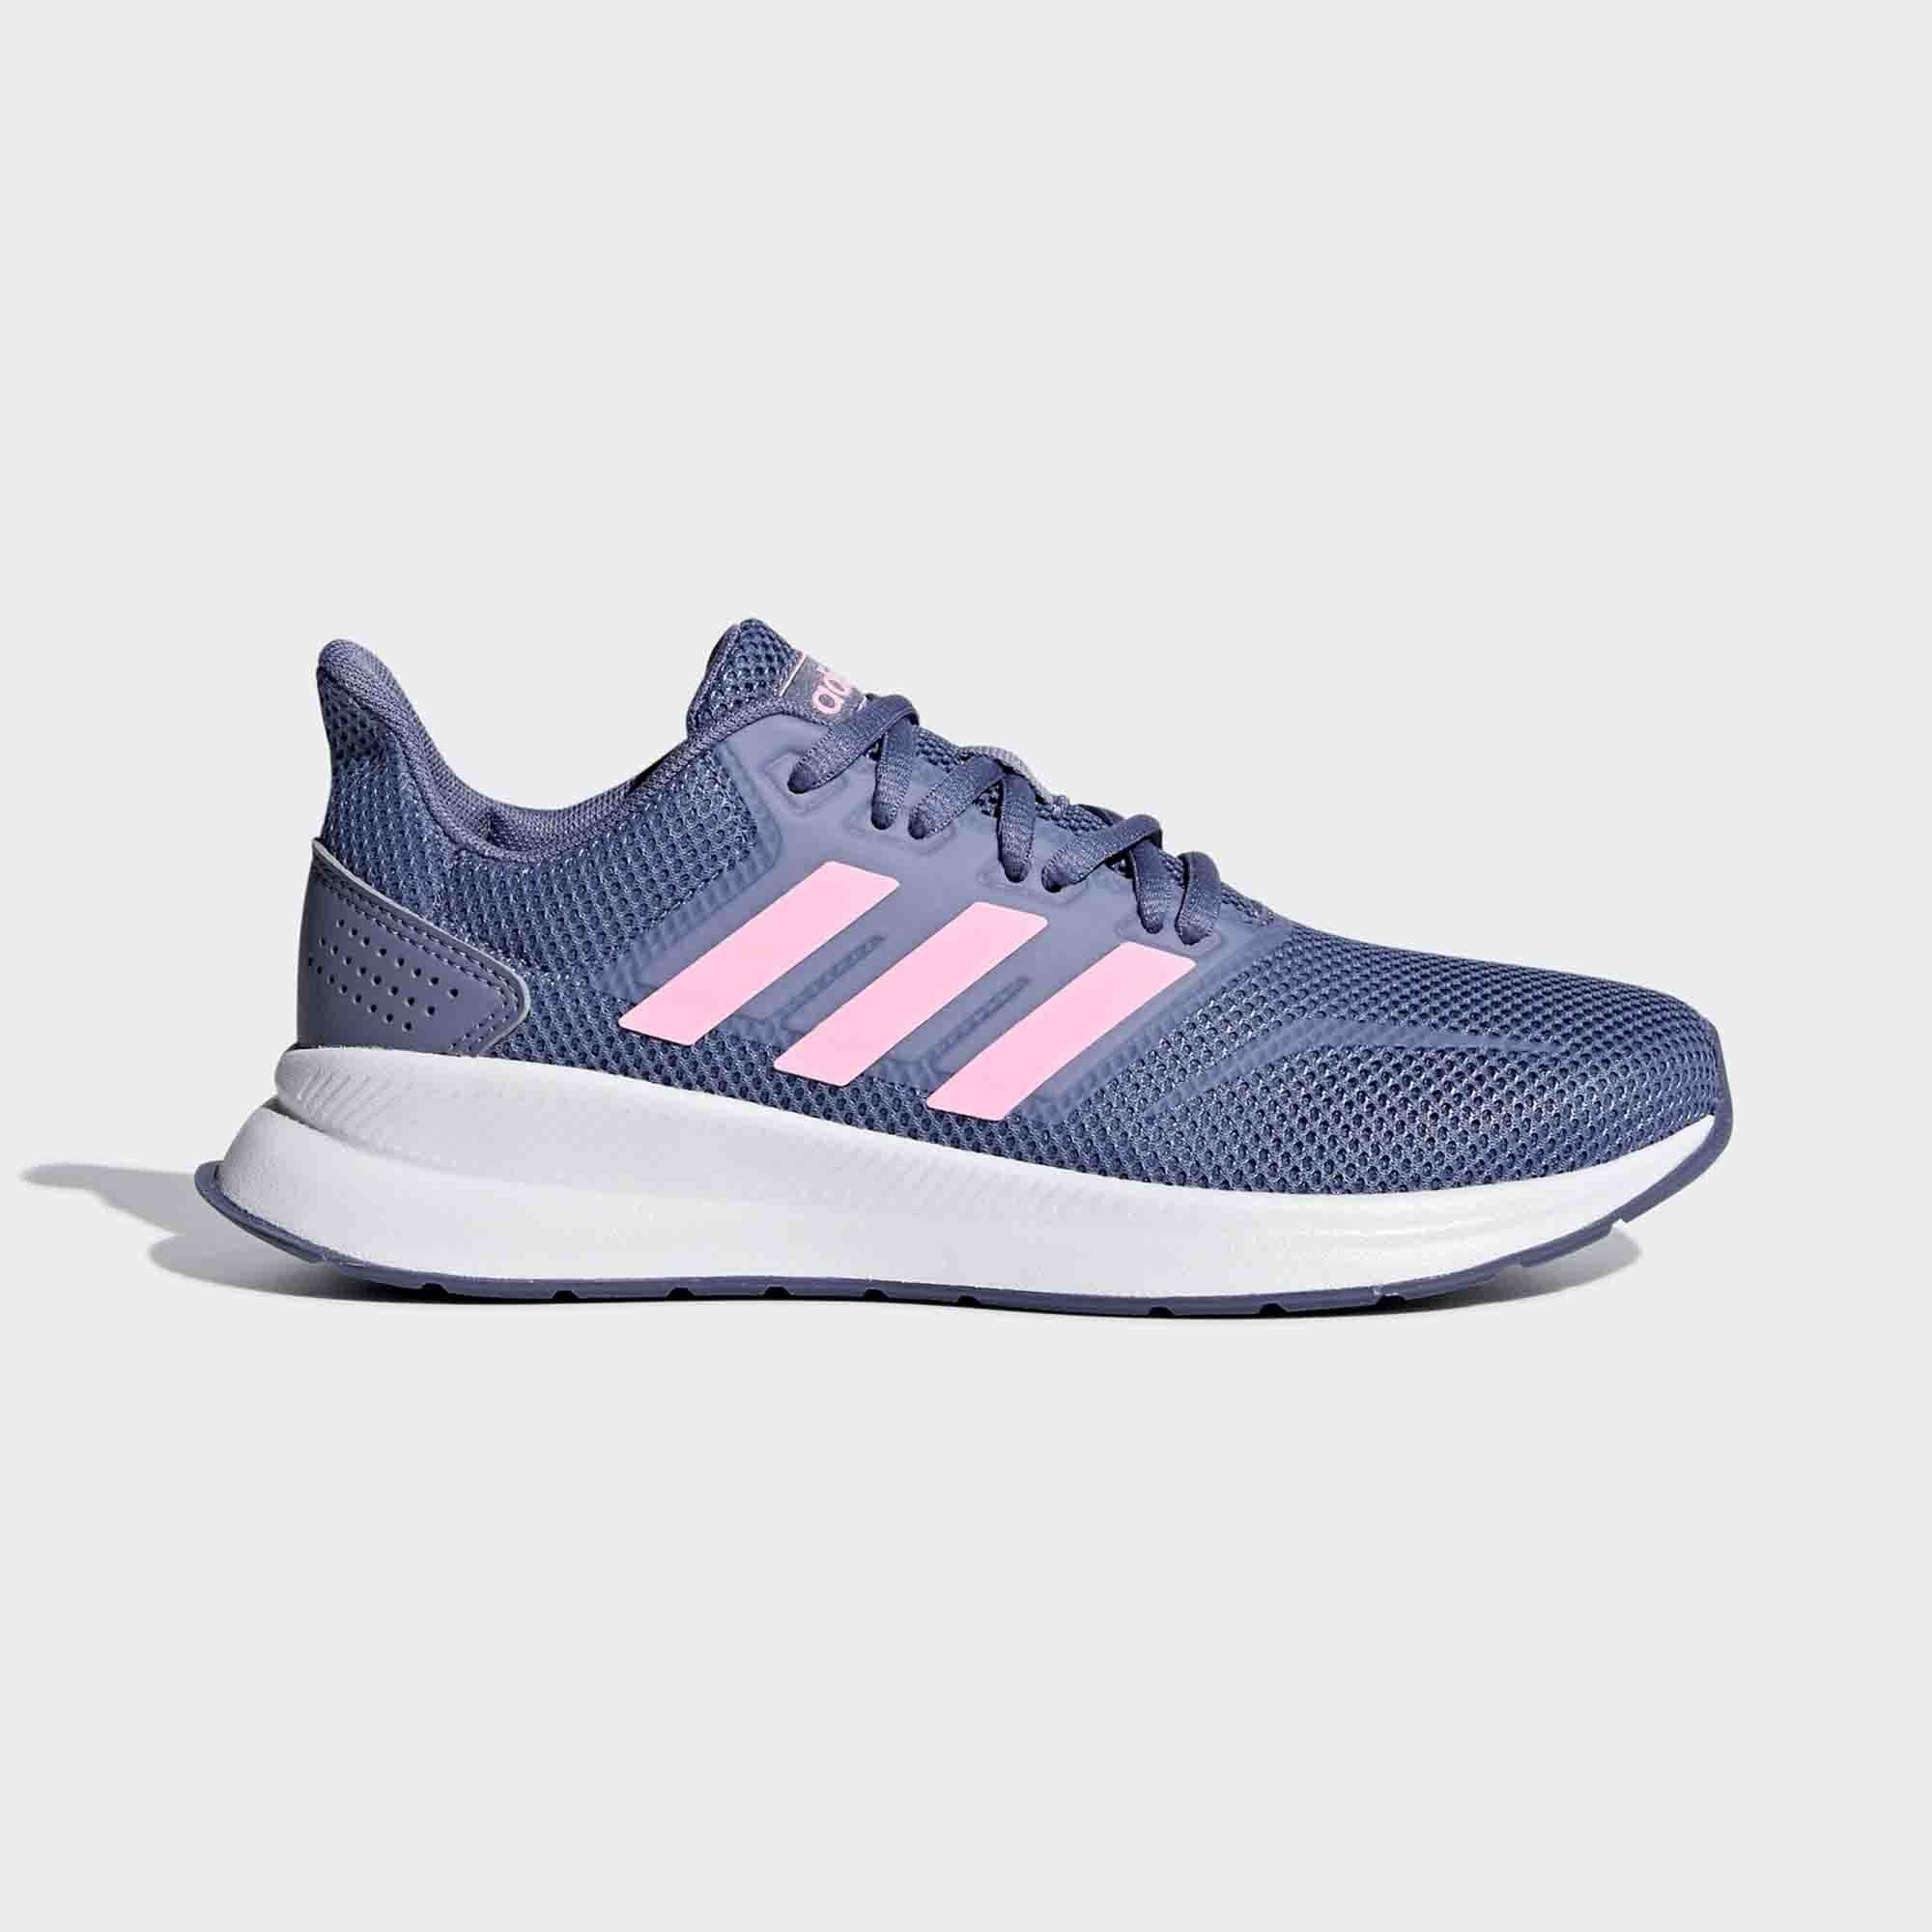 b89fd80c20e3 Buy adidas Girls Runfalcon Running Shoes Online in Singapore | Royal  Sporting House